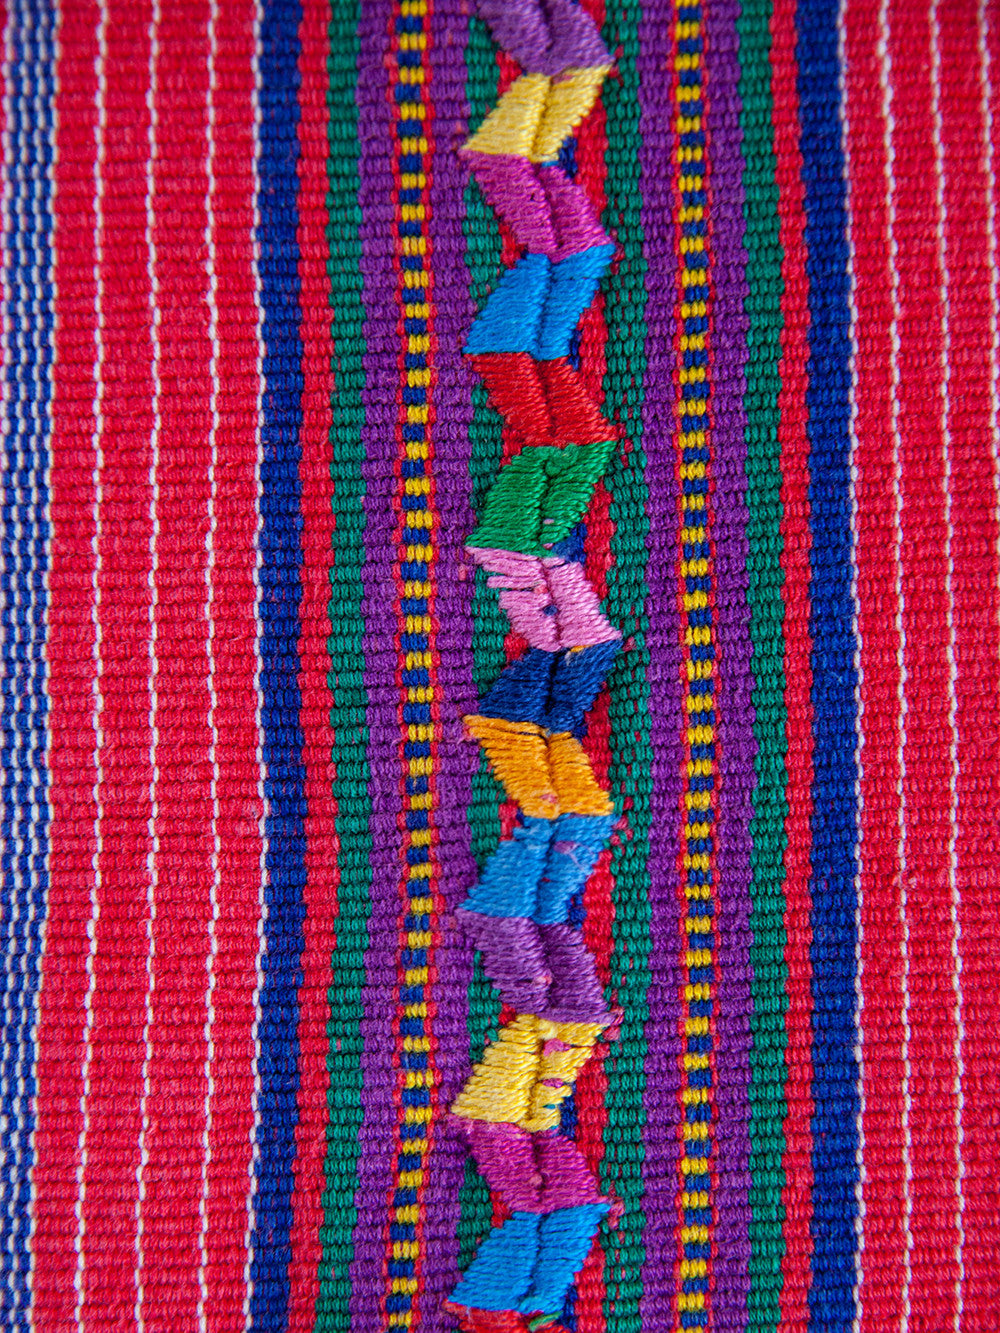 Handwoven Embroidered Guatemalan Textile